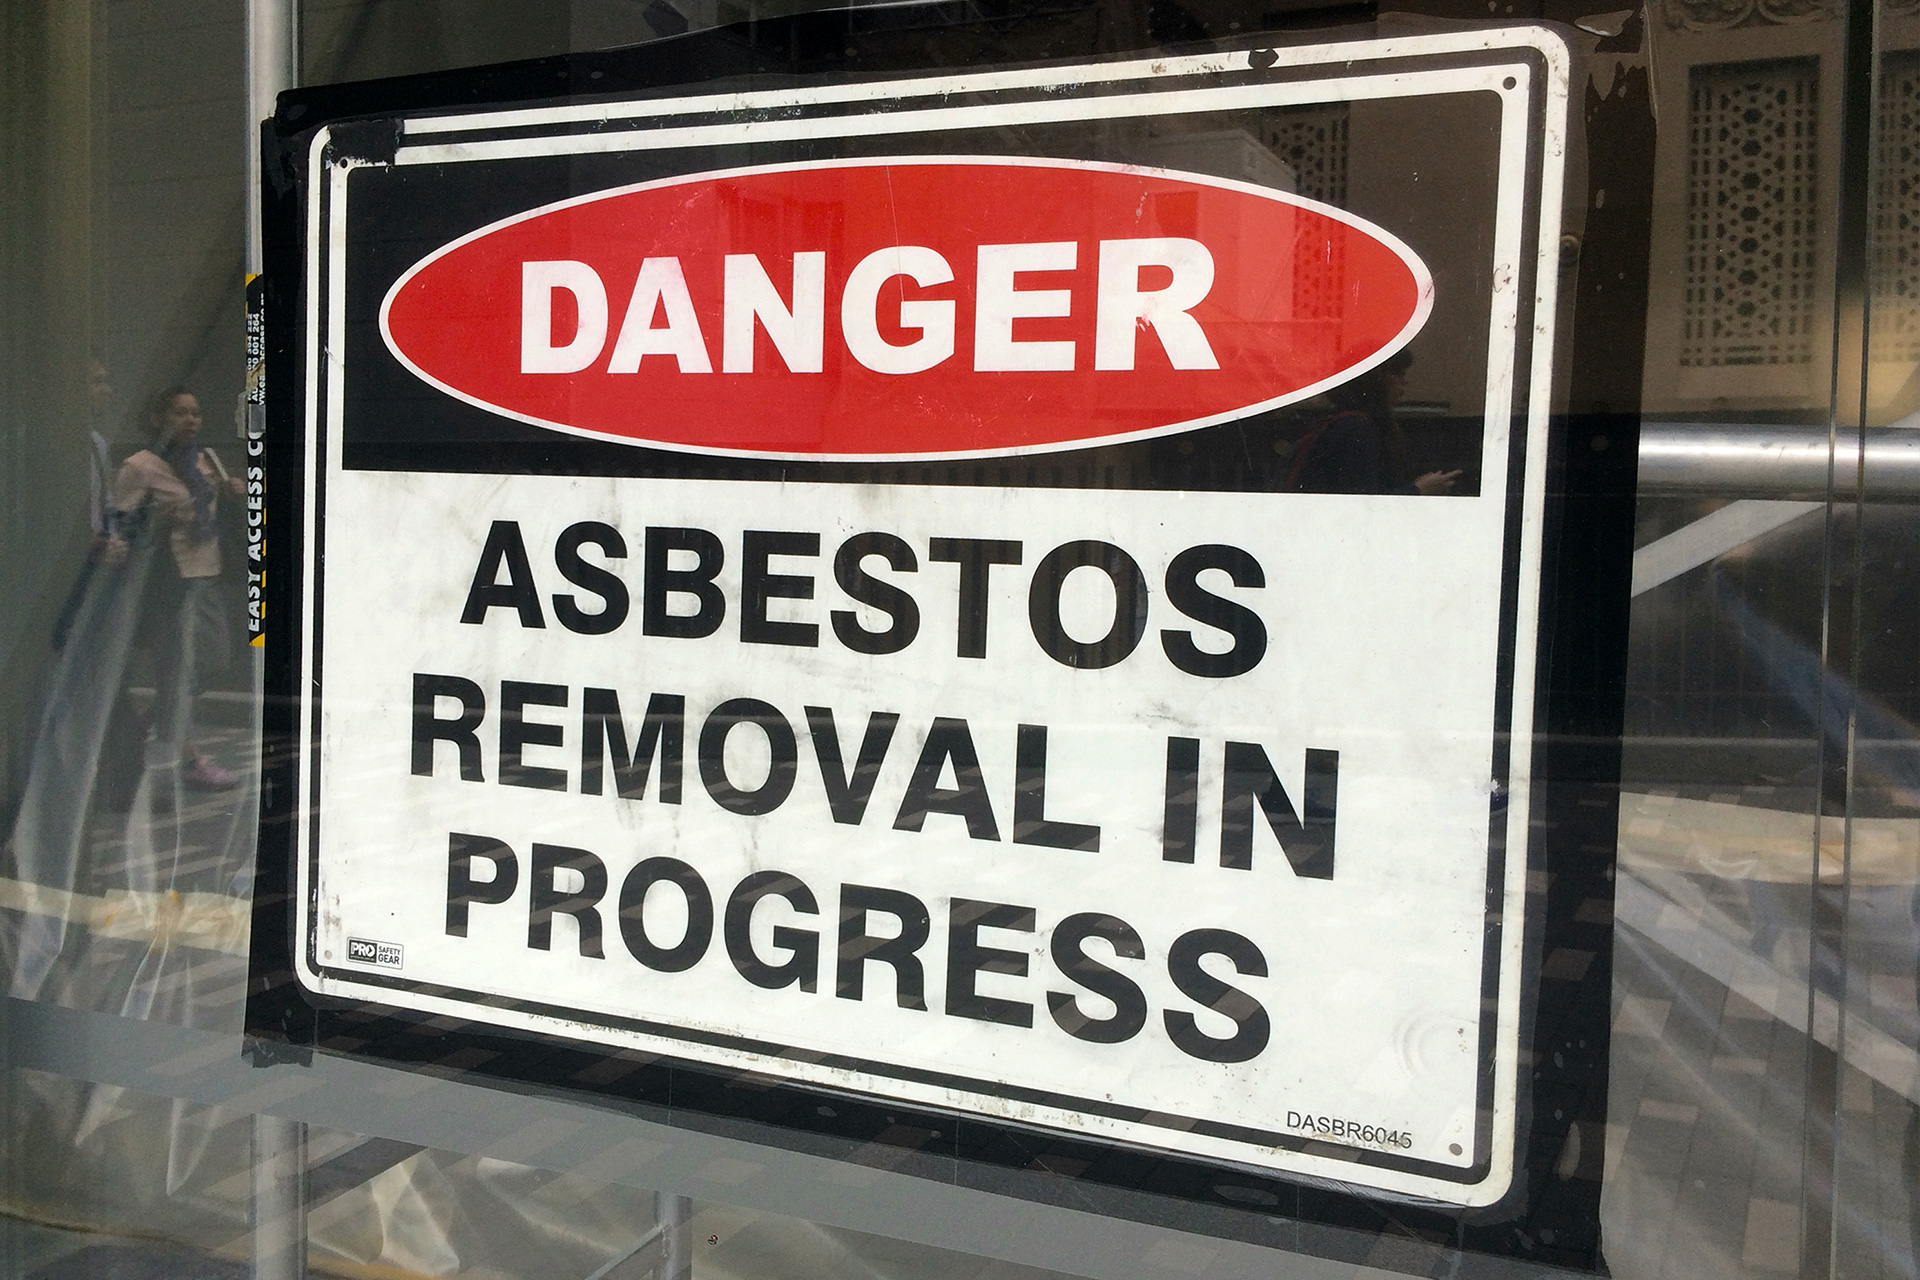 Asbestos Initial Training and Certification Cles in ... on map of california wildfire, map of california canada, map of california food, map of california richmond, map of california fire, map of california aviation, map of california water,